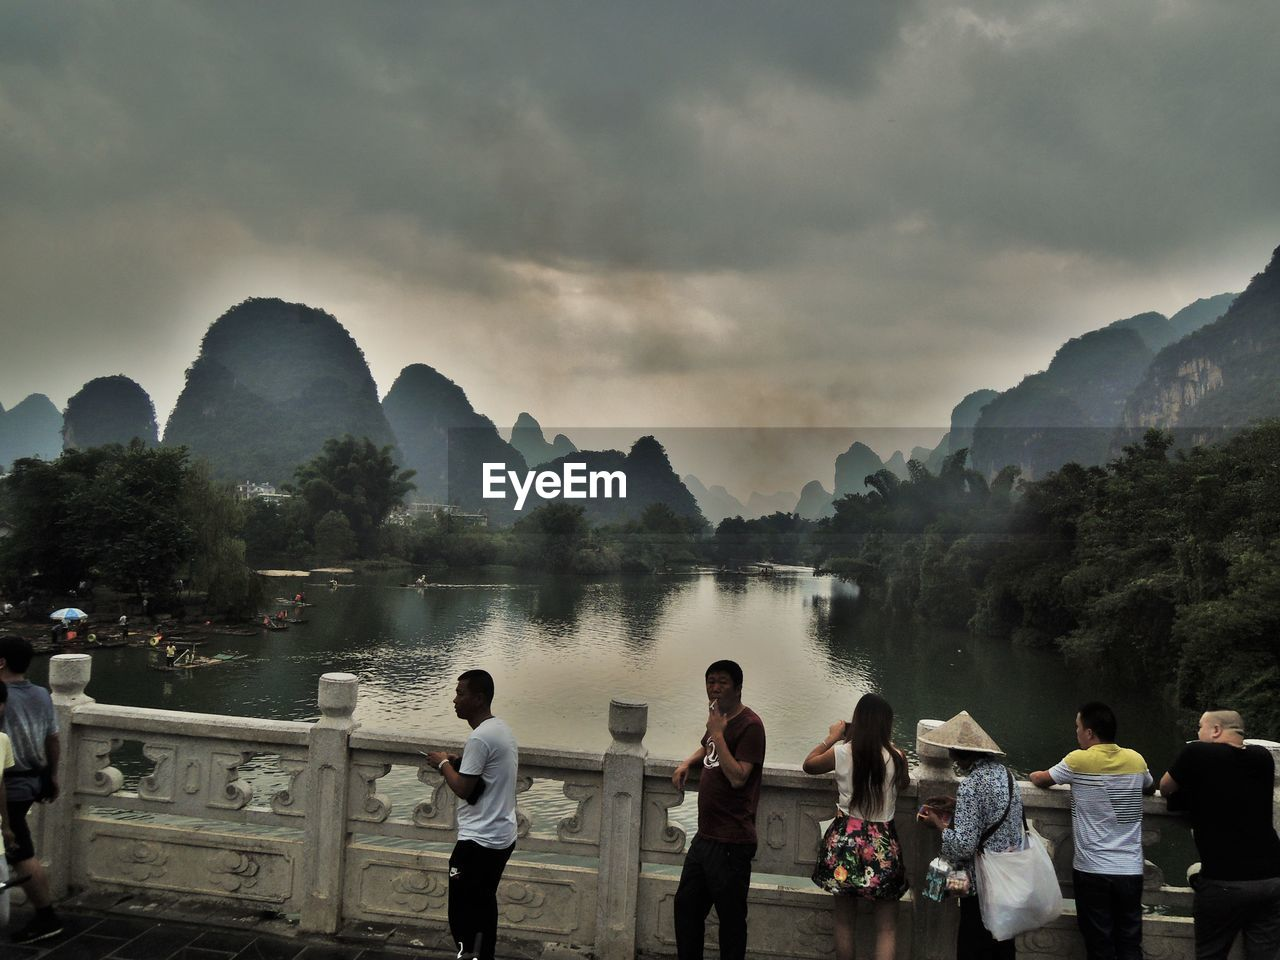 PEOPLE STANDING BY MOUNTAINS AGAINST SKY